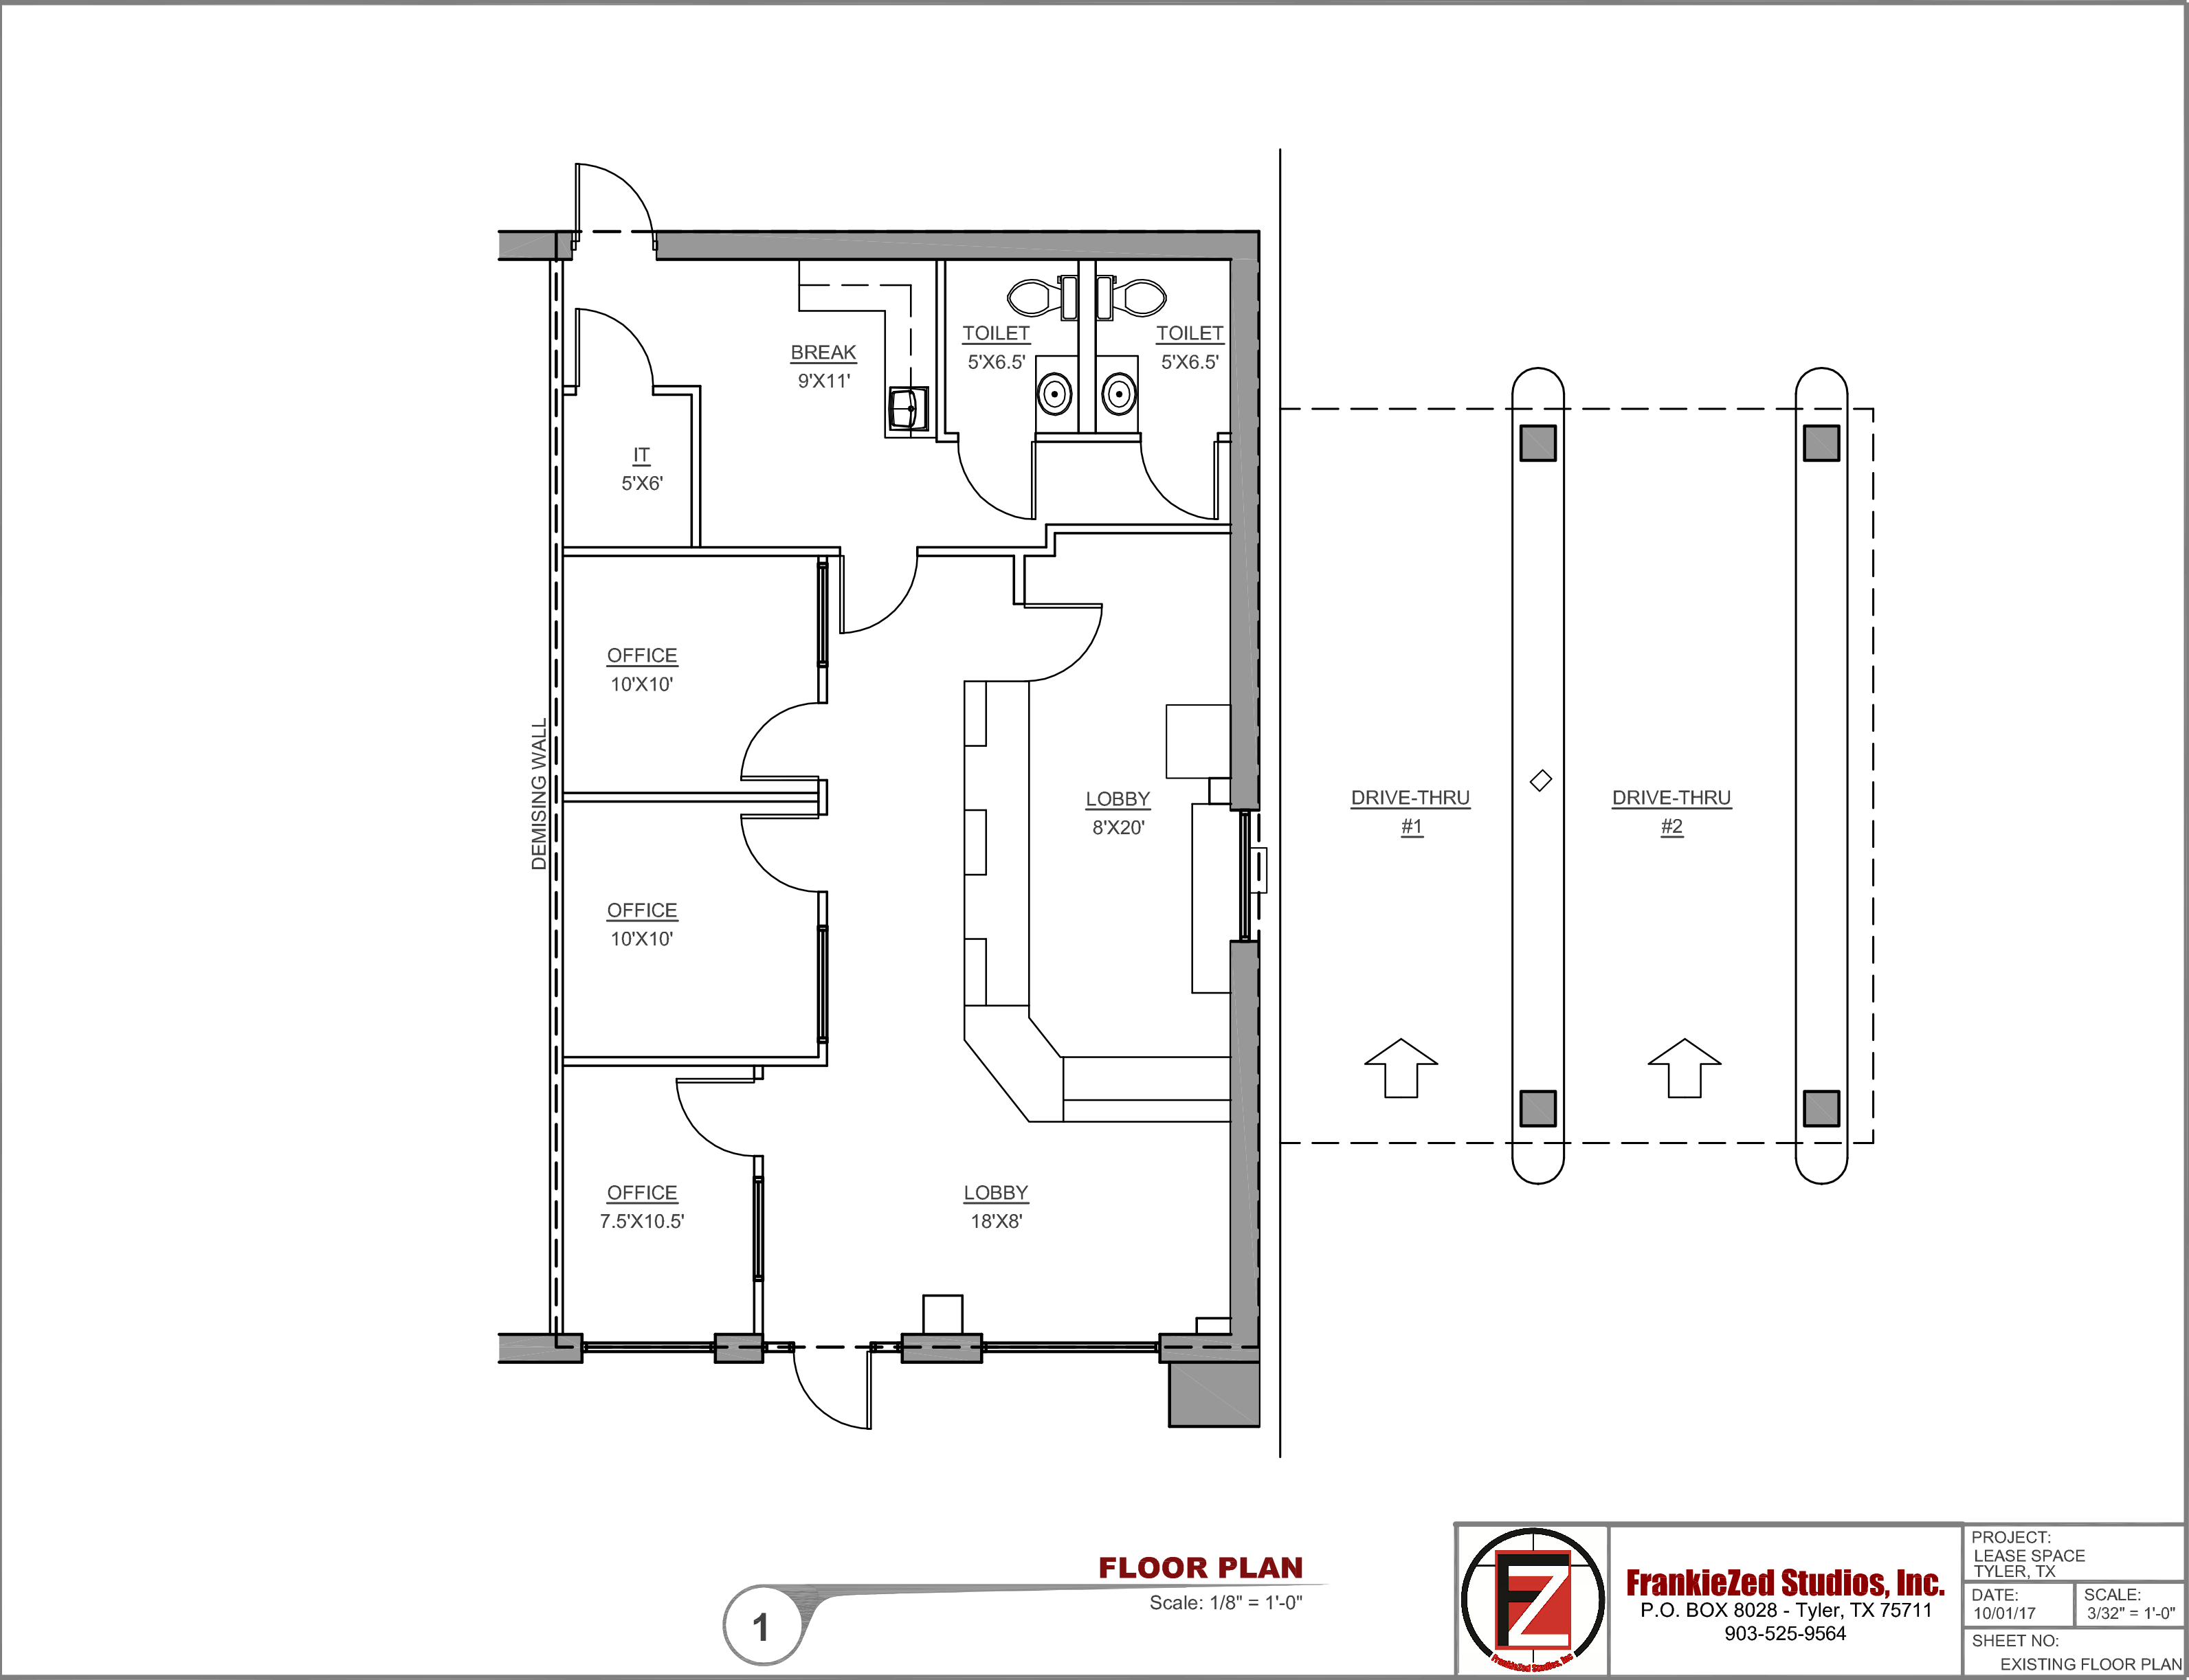 office space floor plan. Commercial As-Built Office Space Floor PlansLaura Alexander2018-03-22T04:29:45+00:00 Plan M